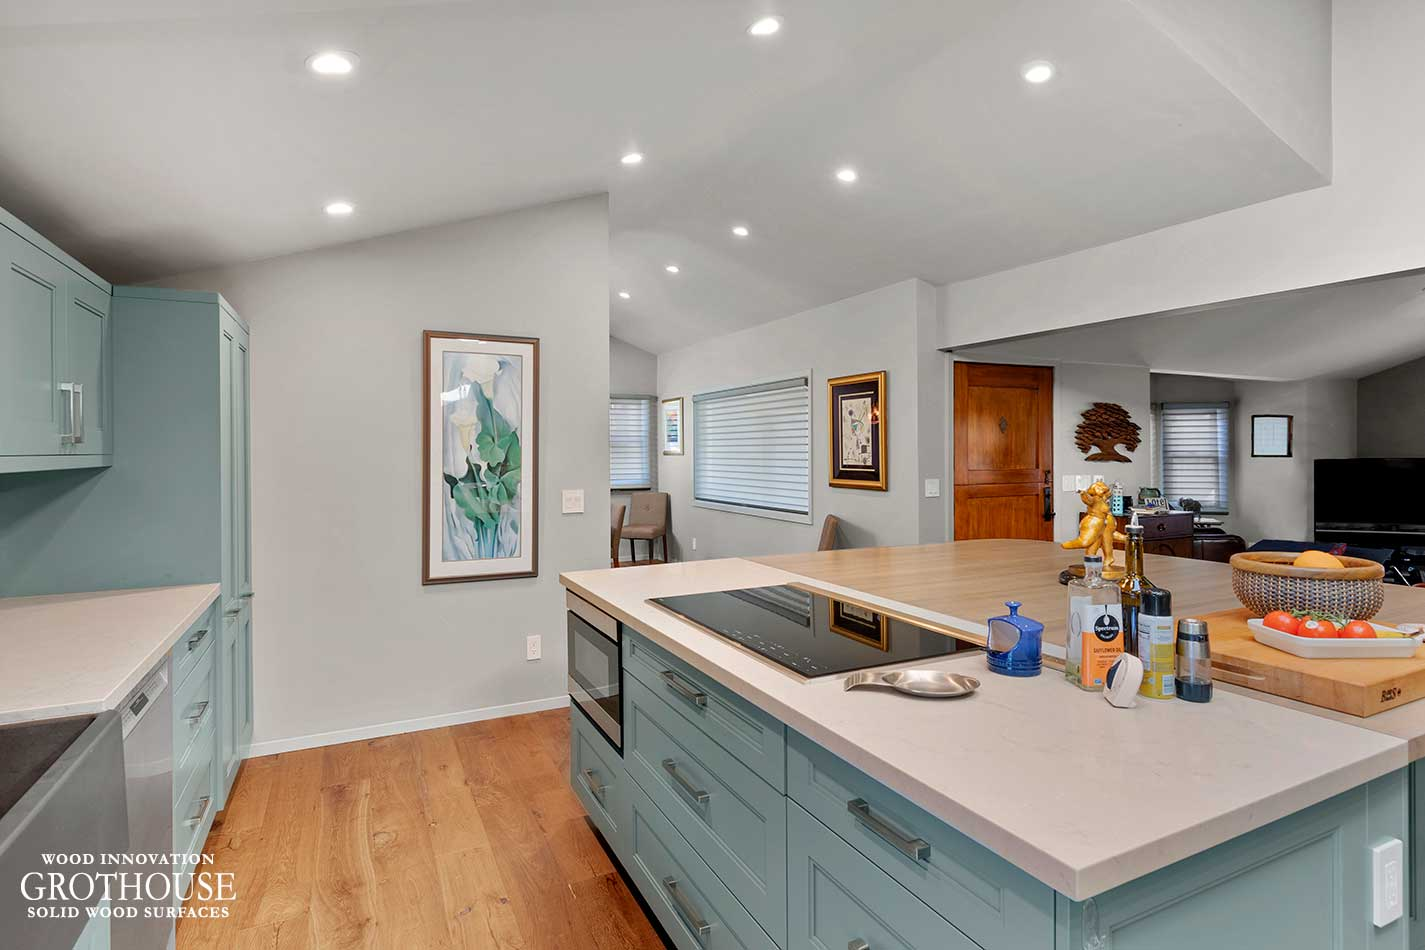 Contemporary Kitchen with a Large Ash Wood Kitchen Island with Soft Teal Cabinetry in Seaside, California